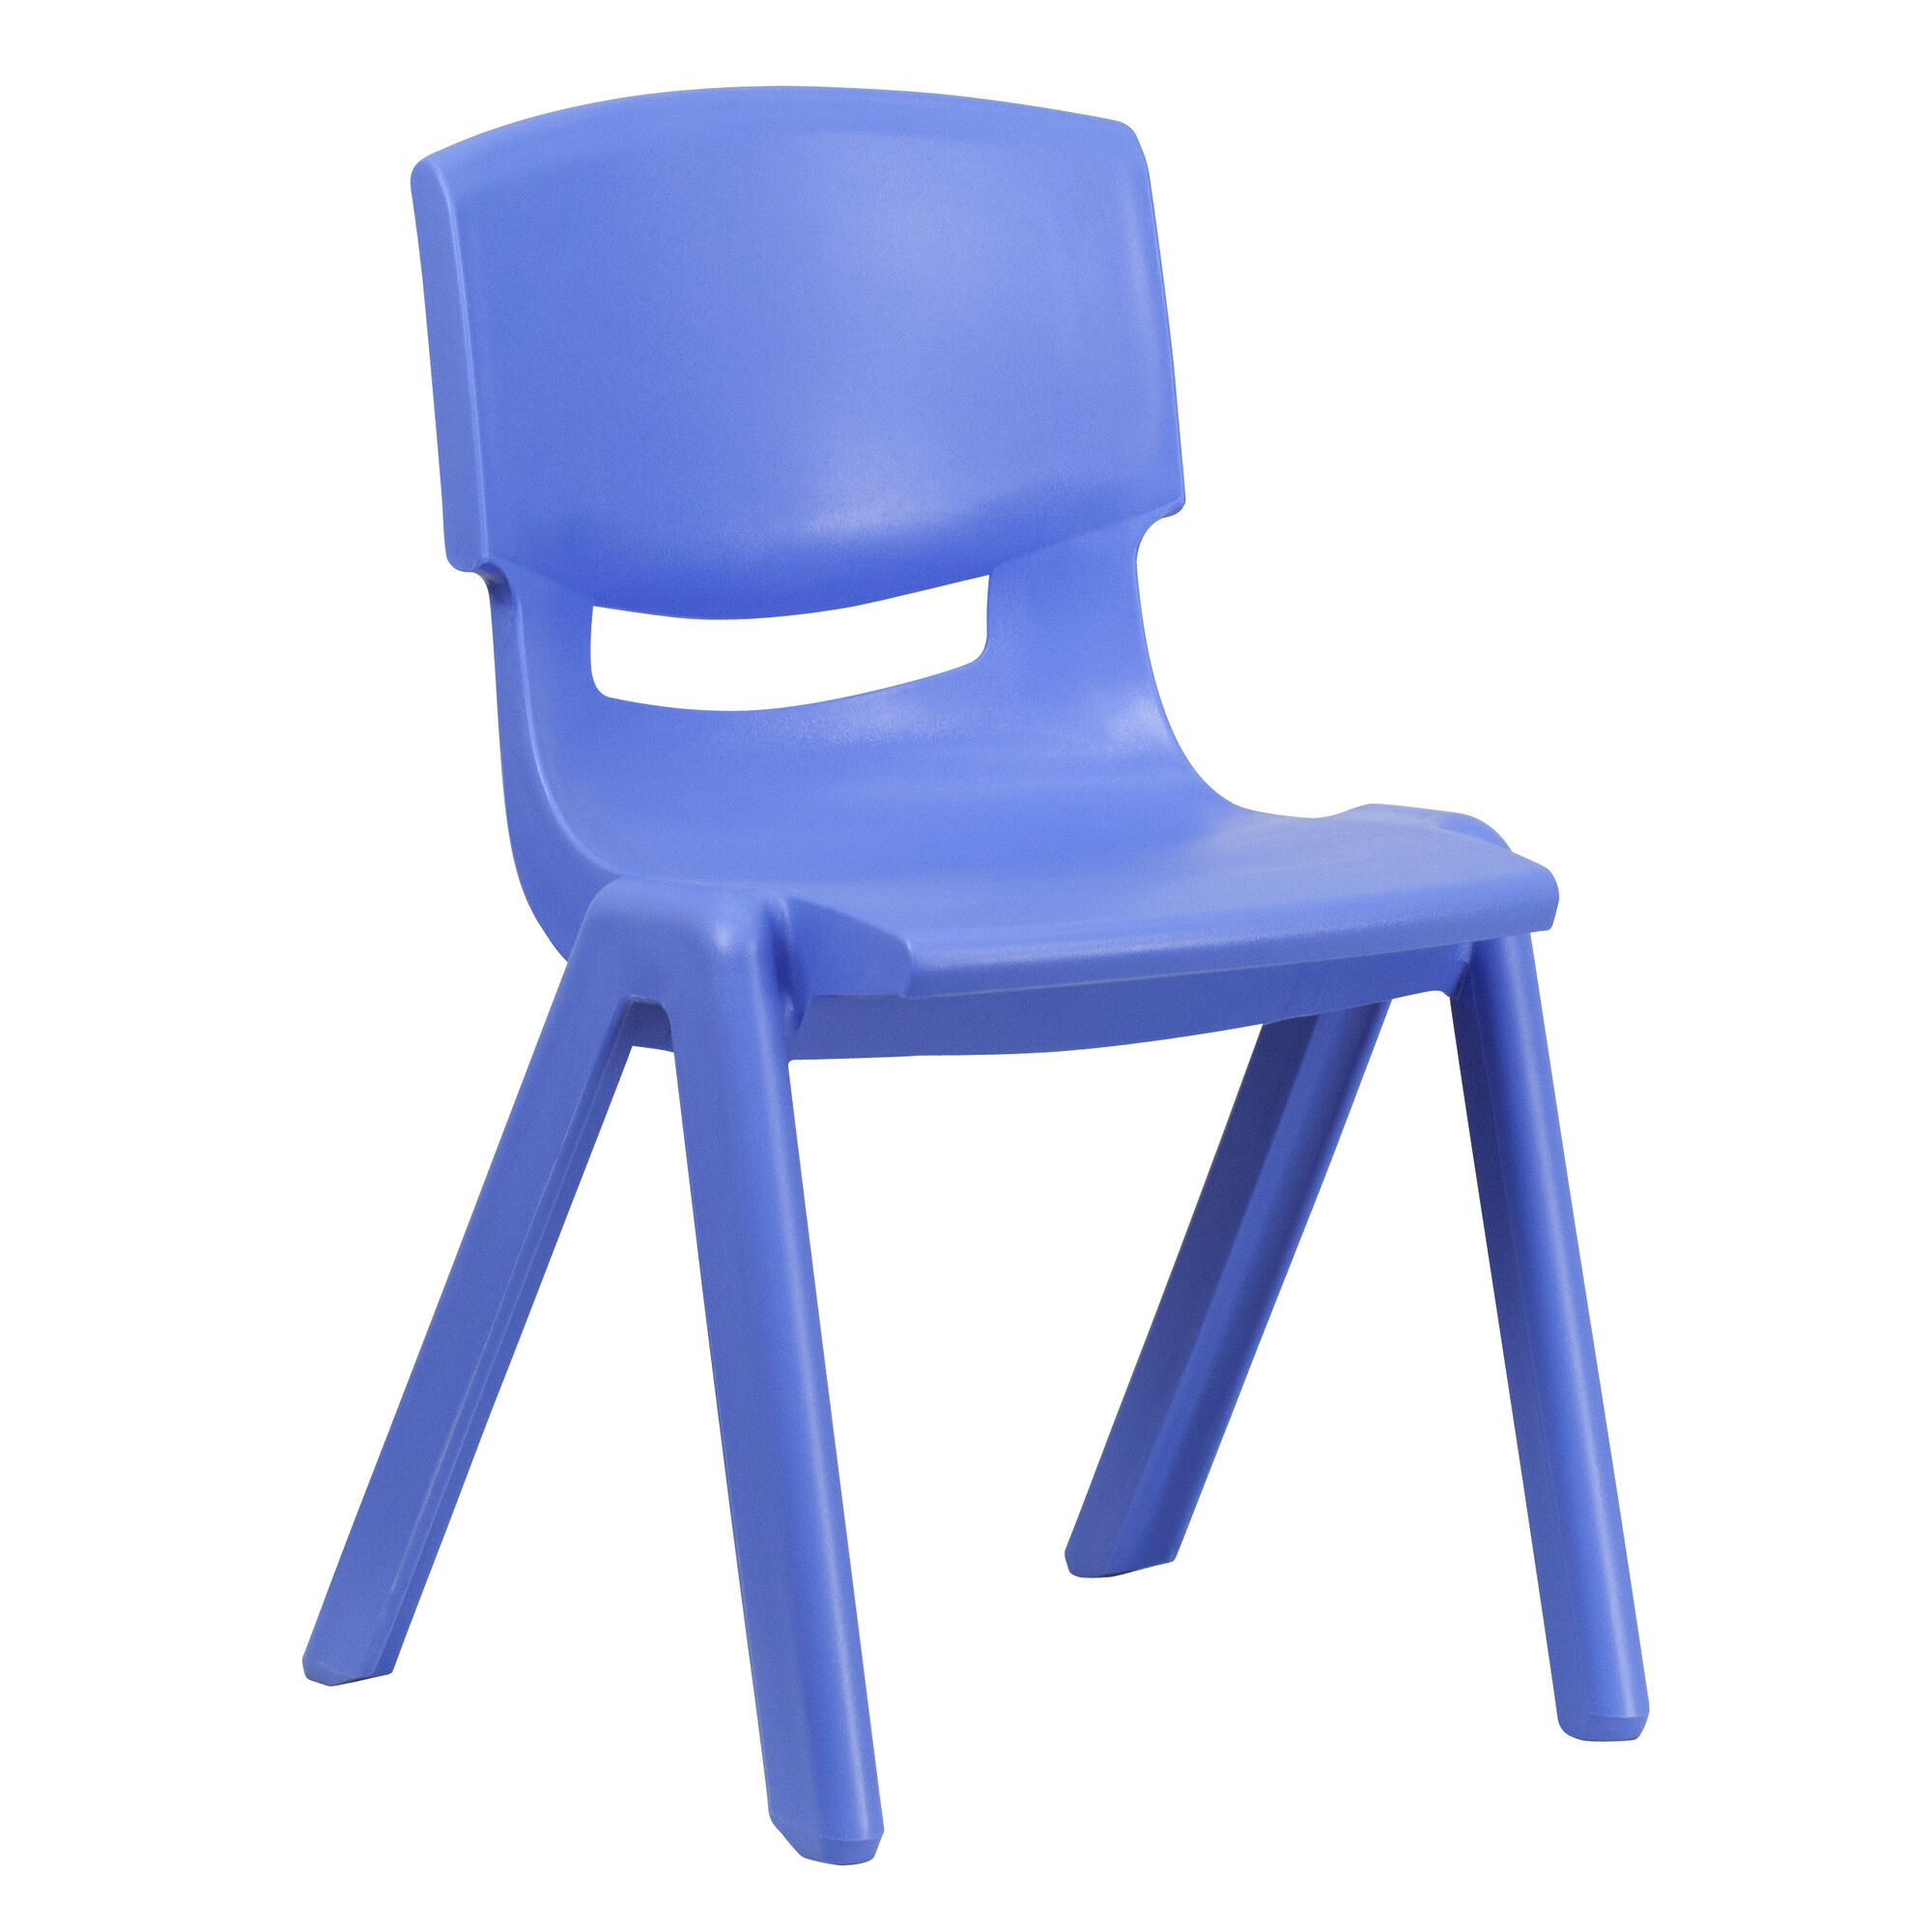 Our Blue Plastic Stackable School Chair With 15 5